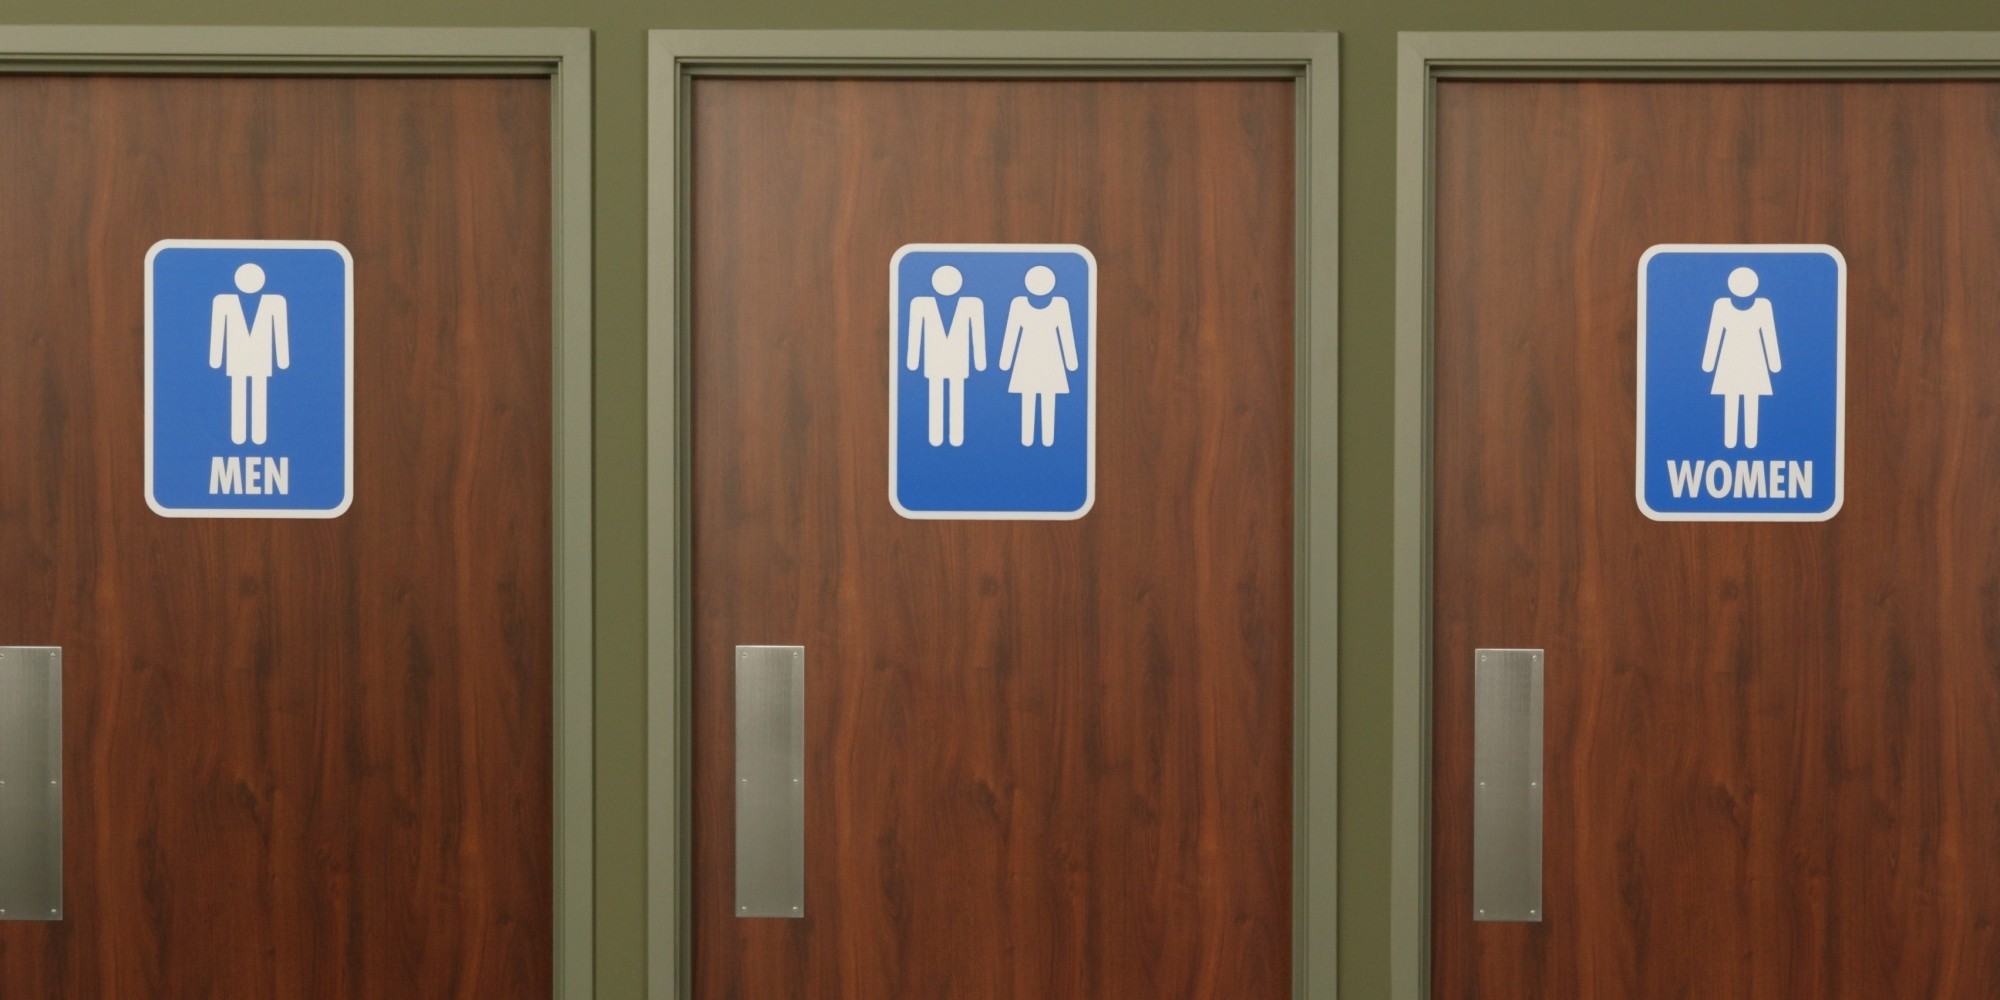 Refuge Restrooms Launches Mobile App To Help Users Locate Gender Neutral  Bathrooms   HuffPost. Refuge Restrooms Launches Mobile App To Help Users Locate Gender